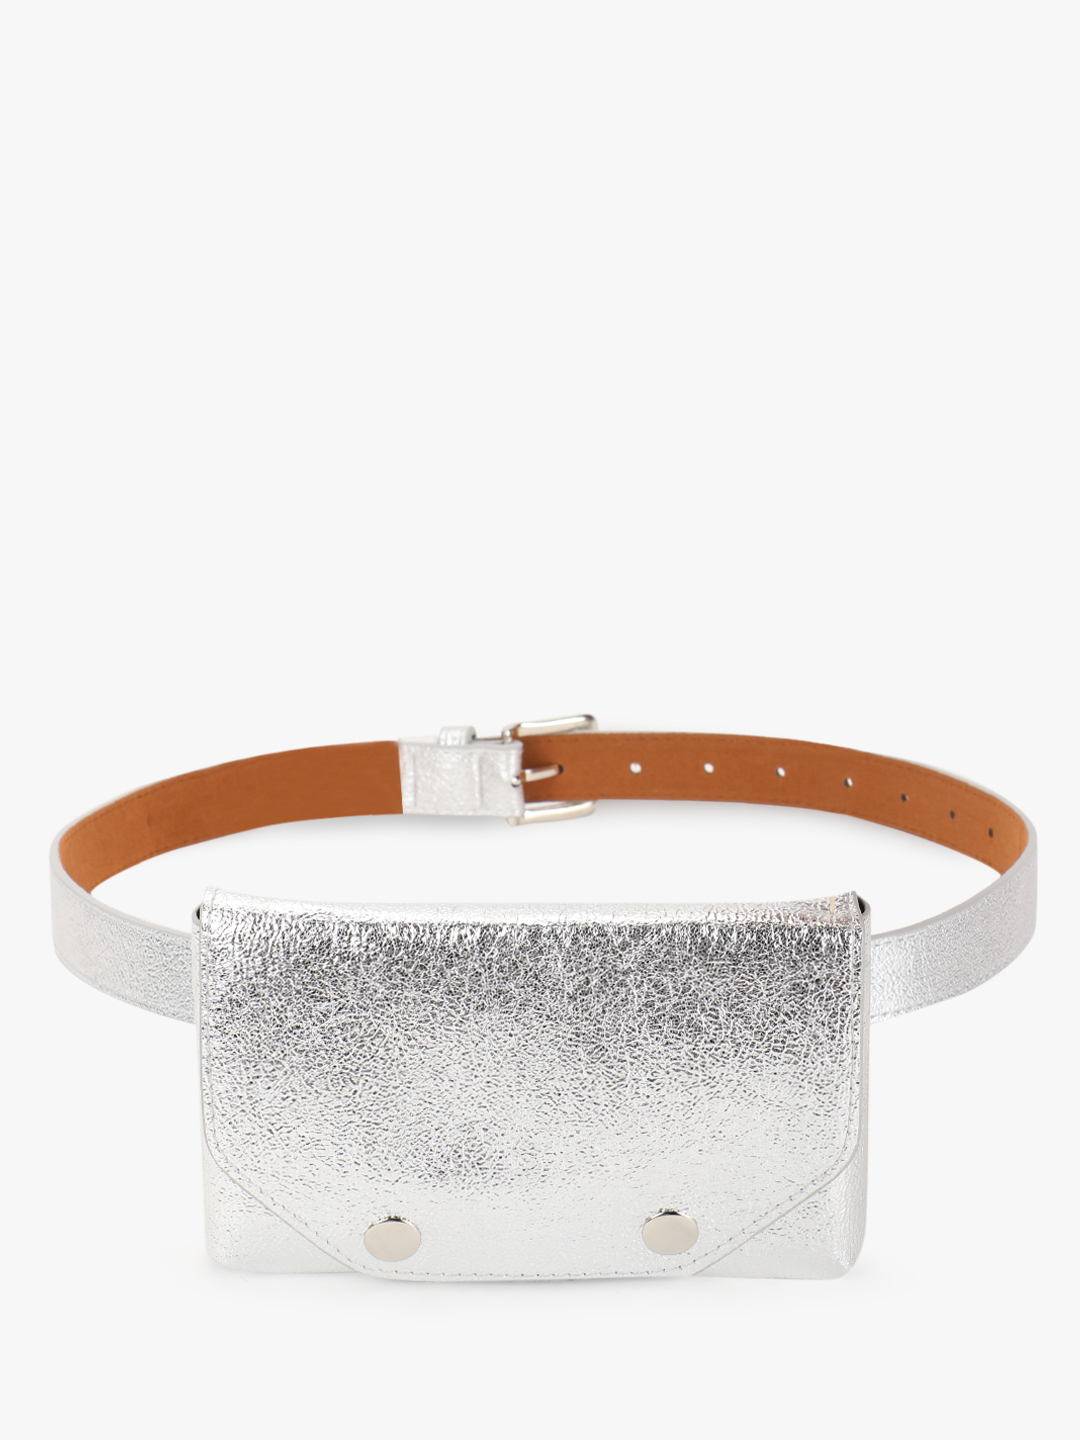 KOOVS Silver Textured Metallic Bum Bag 1